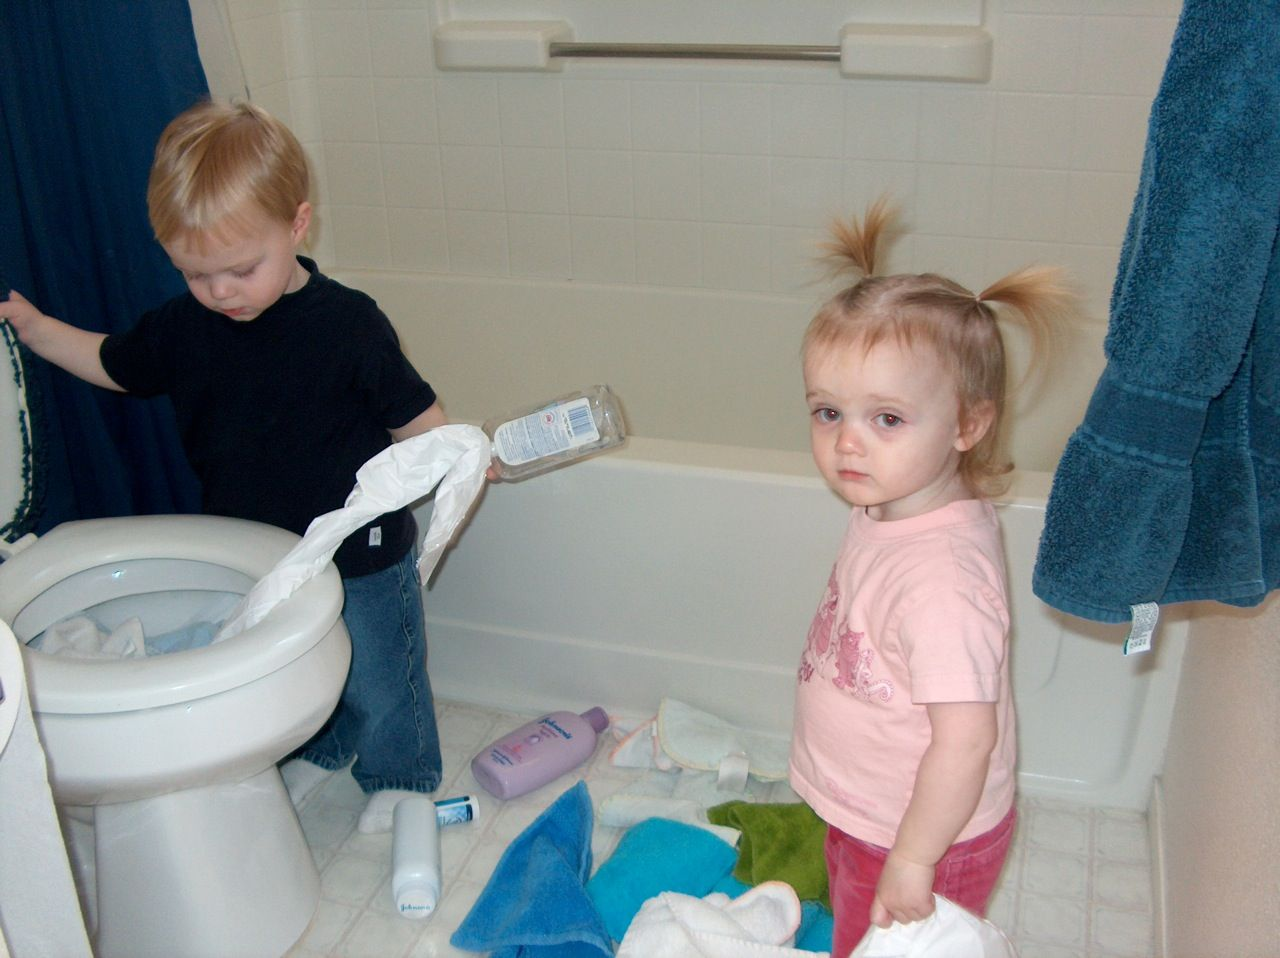 Twiniversity Tips: What chores can your kids help with (sorted by age.)